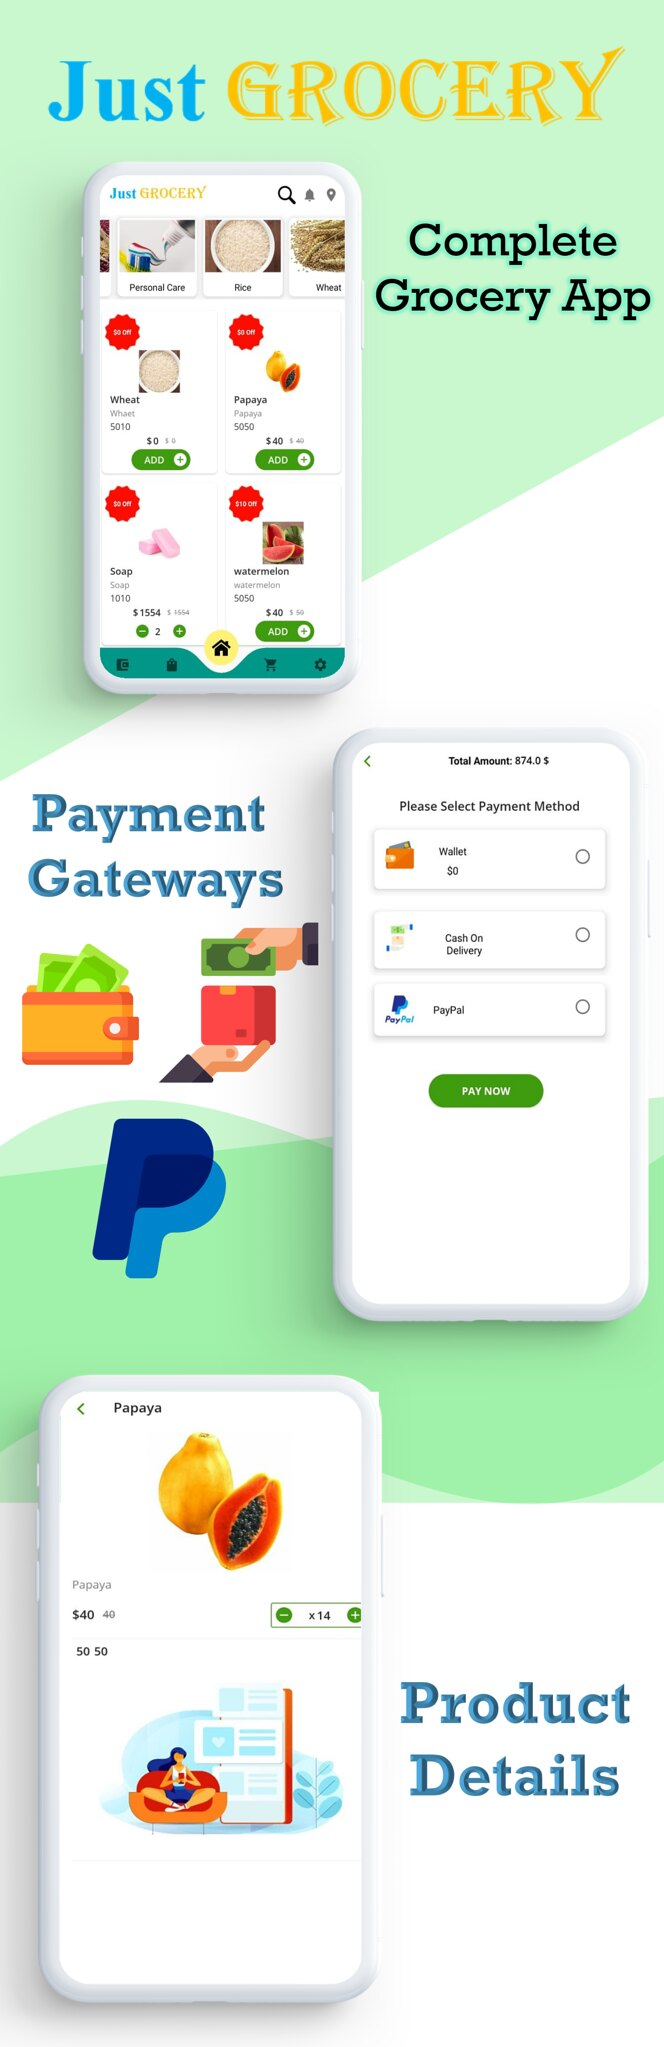 Just Grocery App | Grocery At Home | Paypal & Razorpay Integrated | Delivery & Customer App - 3